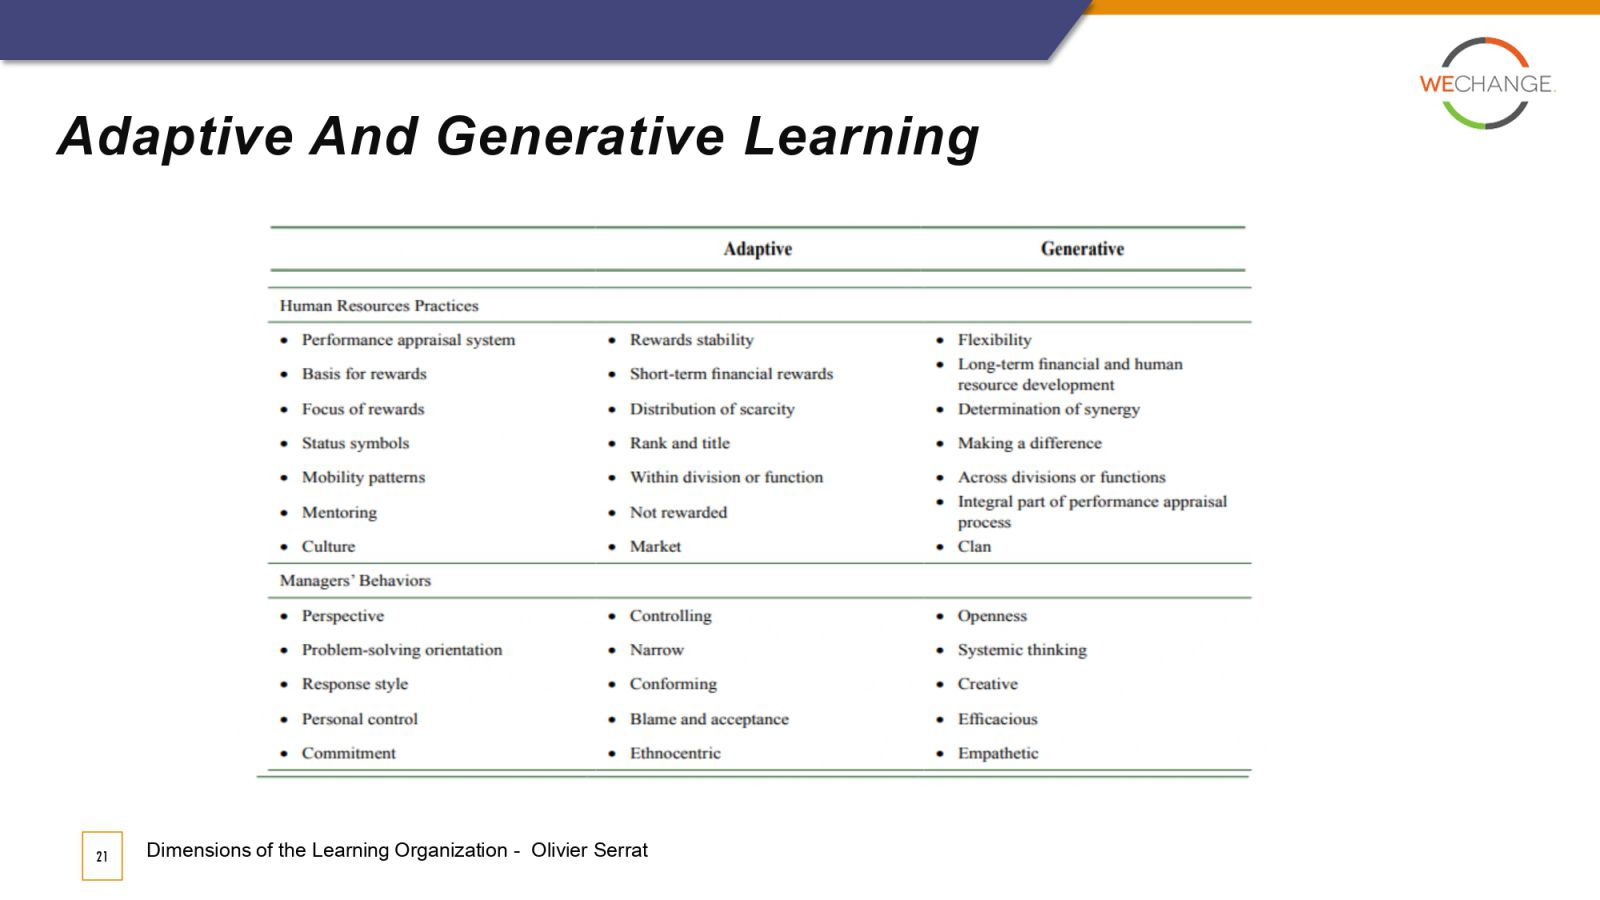 The Learning Organization page 0021 compressed The Learning Organization